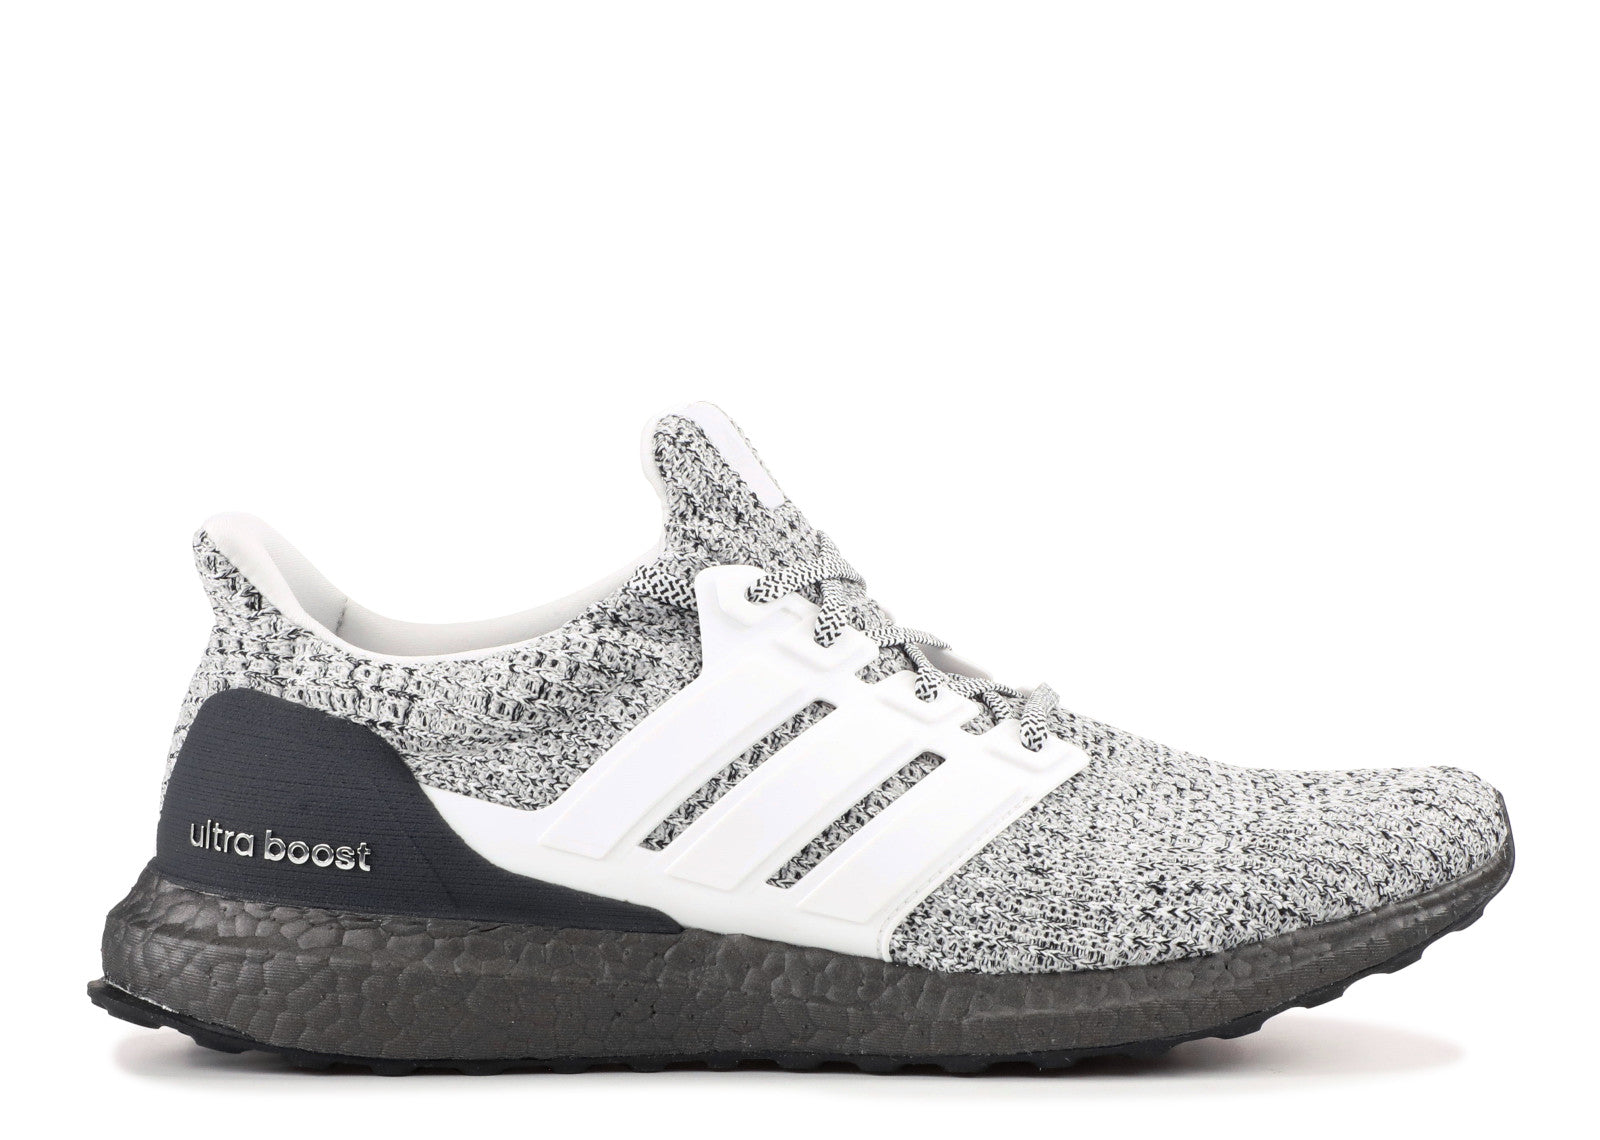 Adidas Ultra Boost 4.0 'Cookies And Cream'